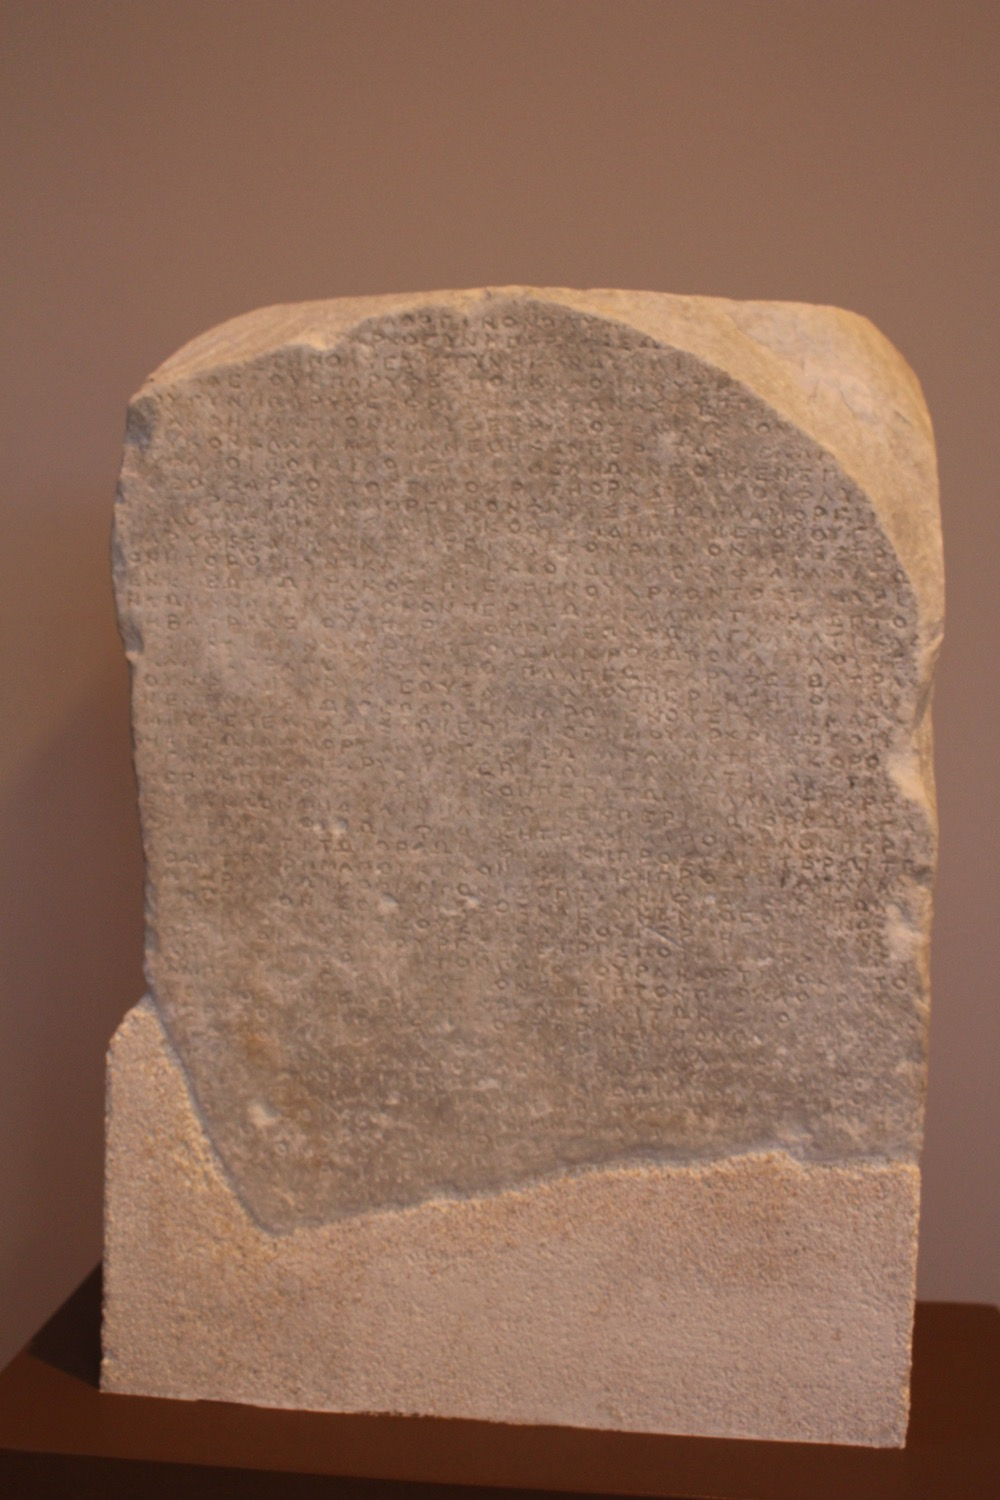 A marble plaque carved with dedications